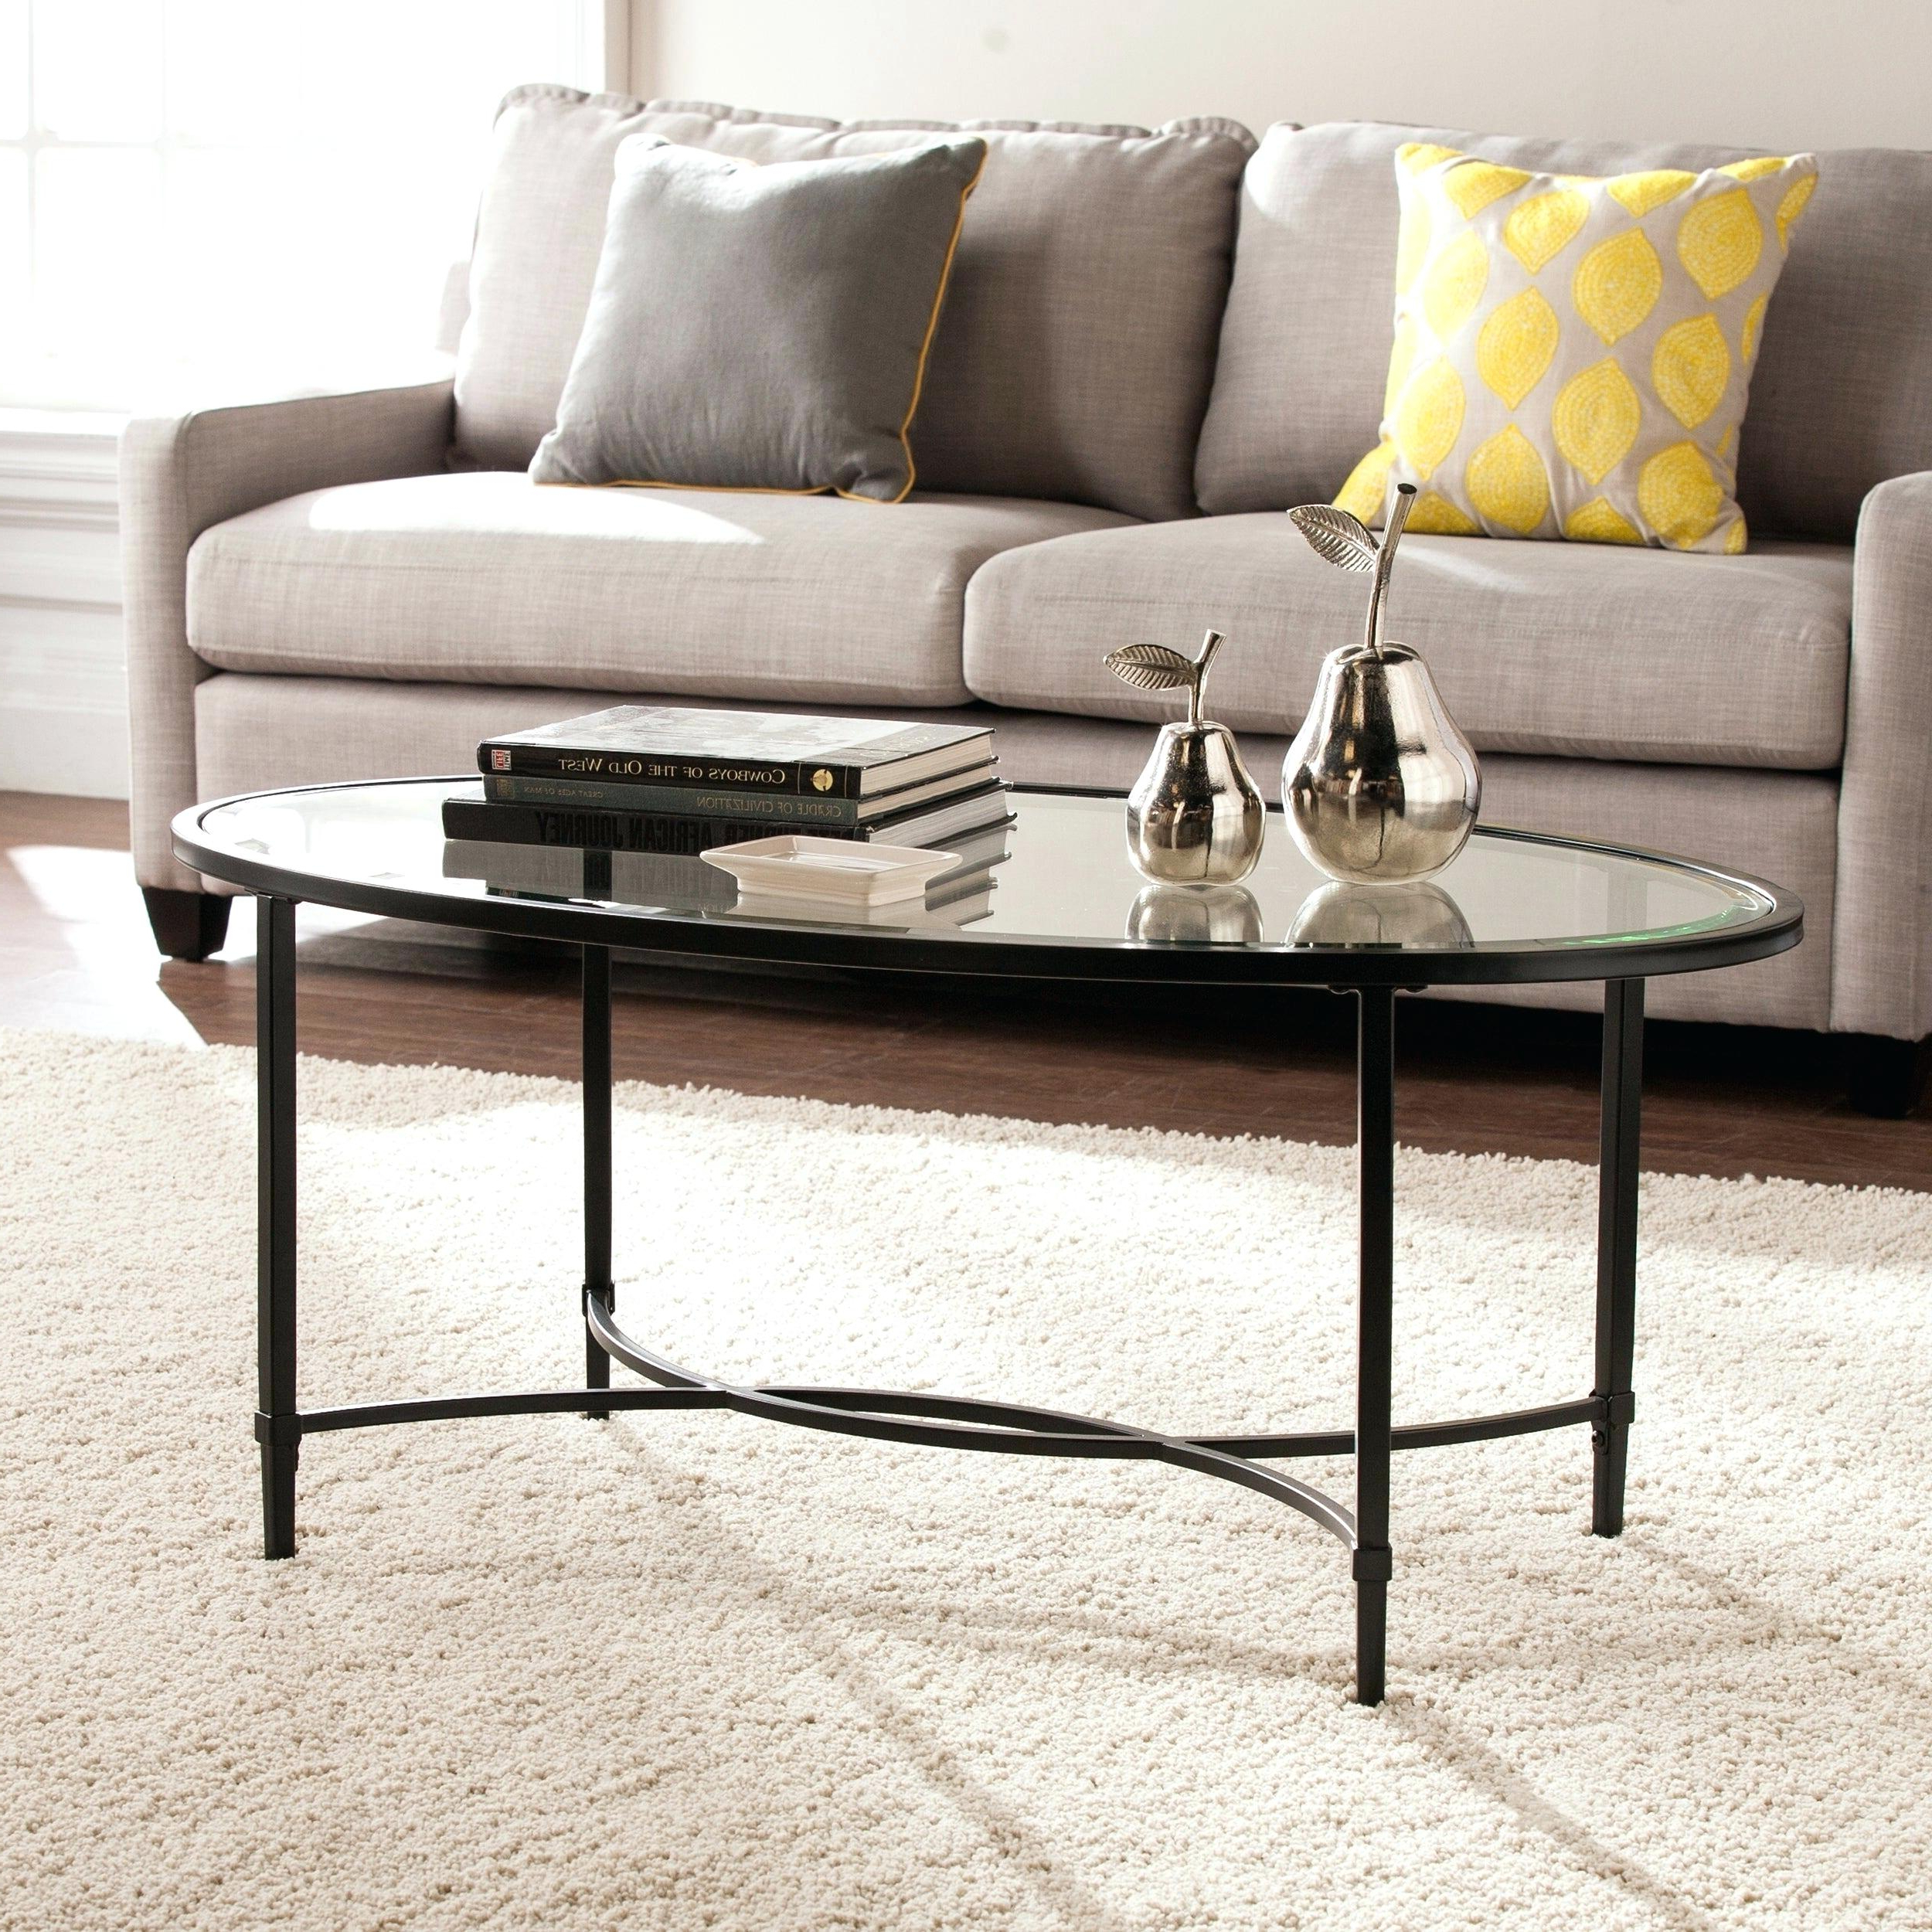 Oval Metal Coffee Table – Allathomehealth (View 19 of 20)